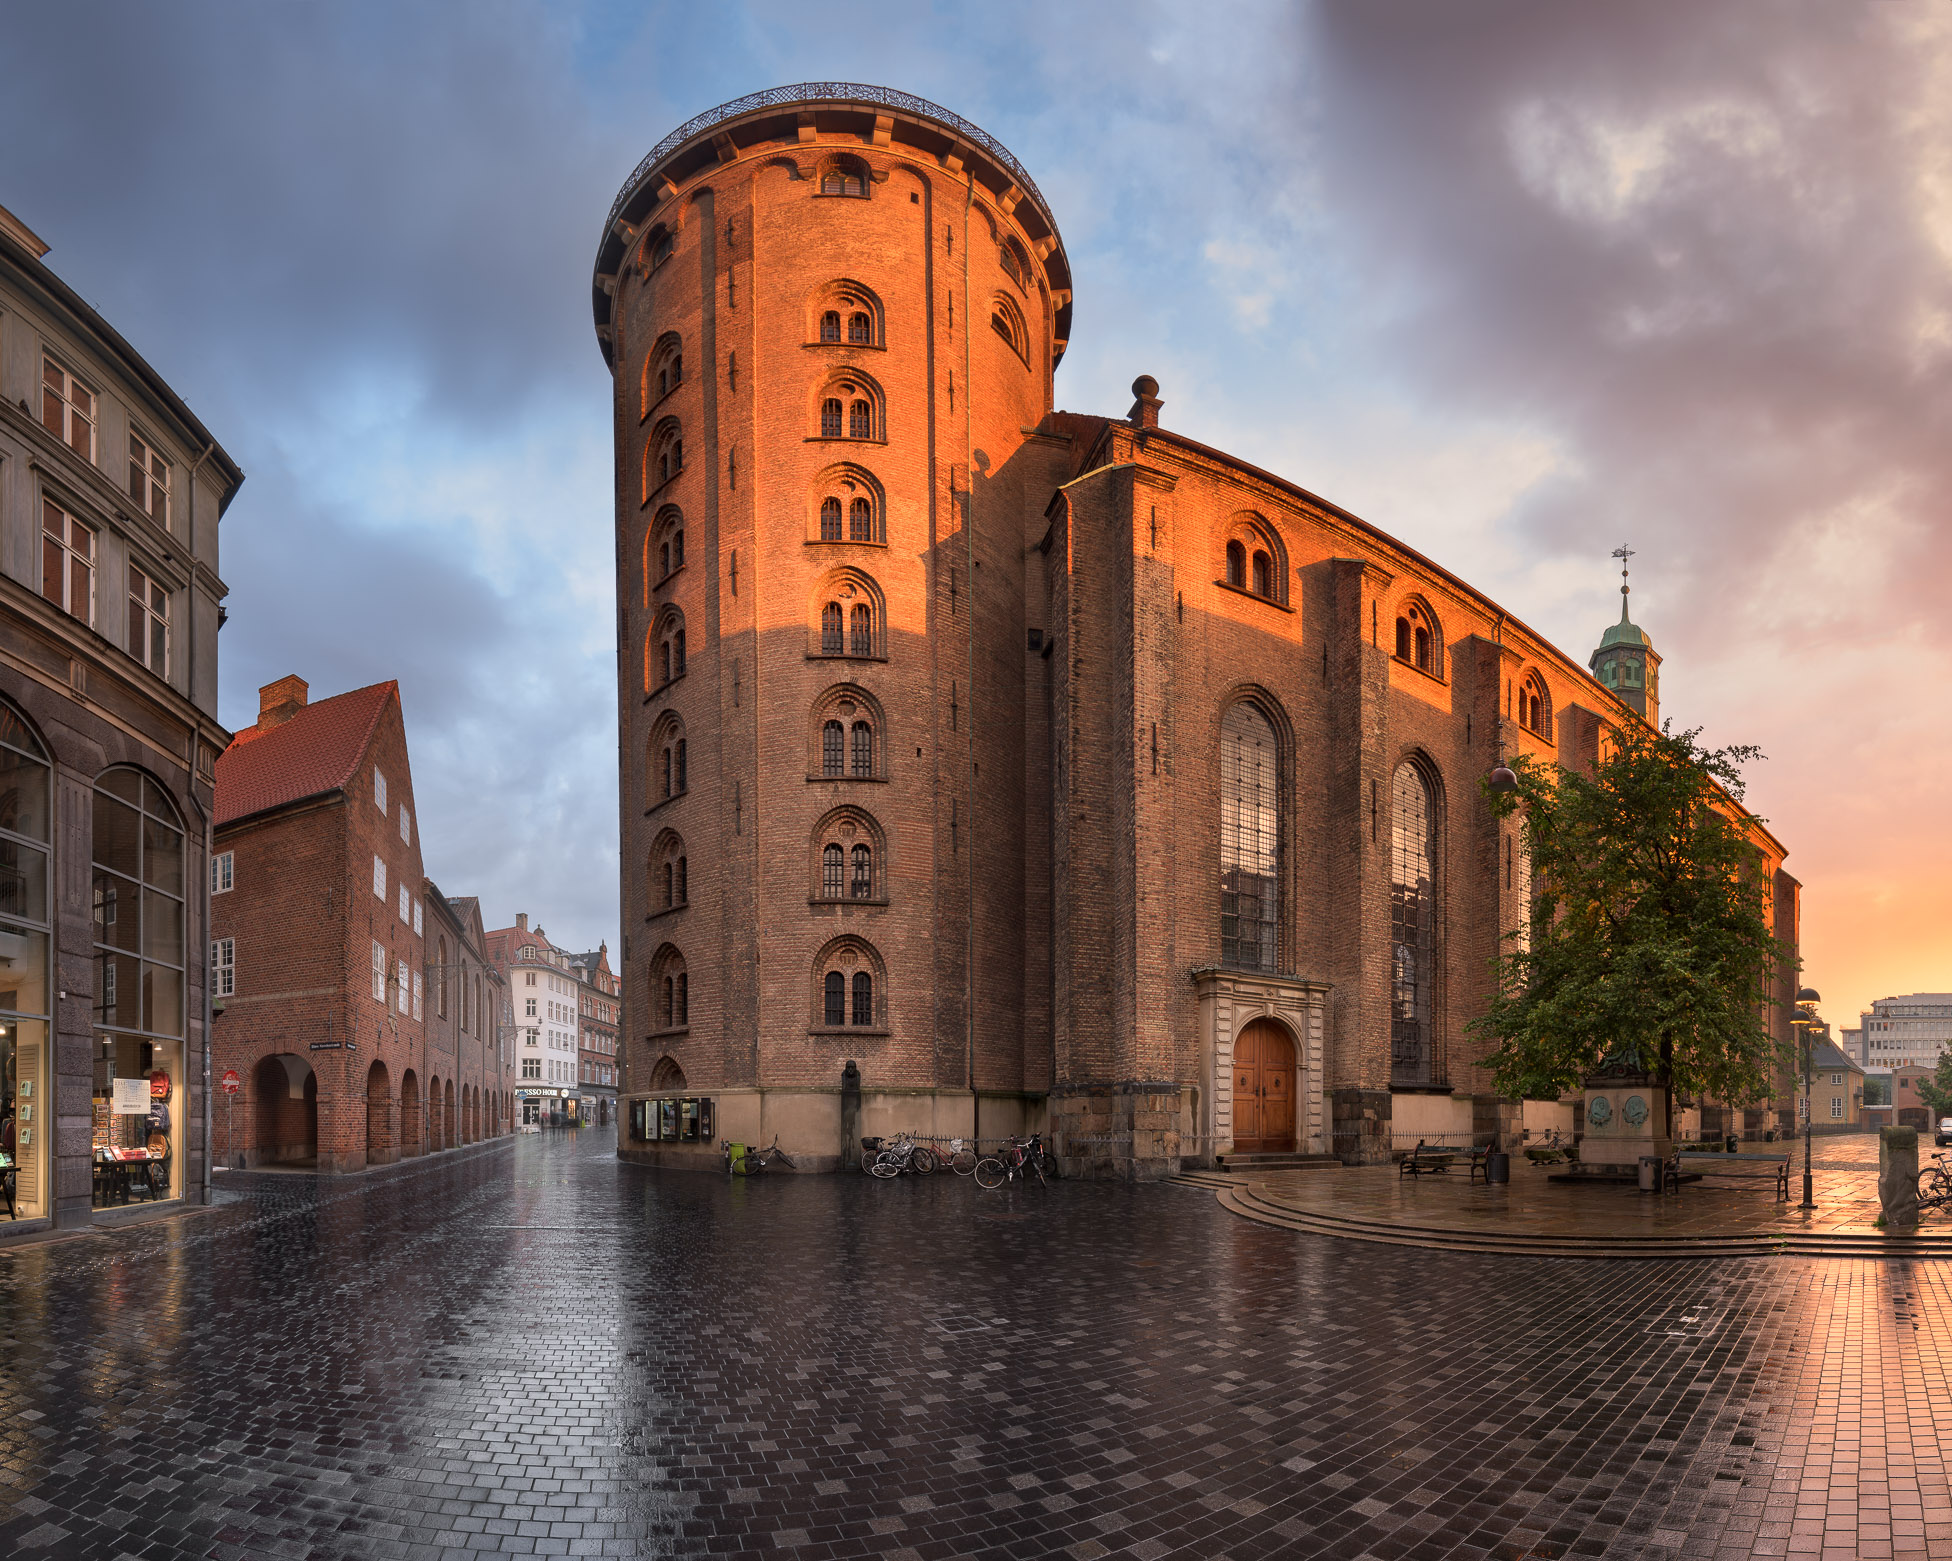 Panorama of the Round Tower in the Morning, Copenhagen, Denmark